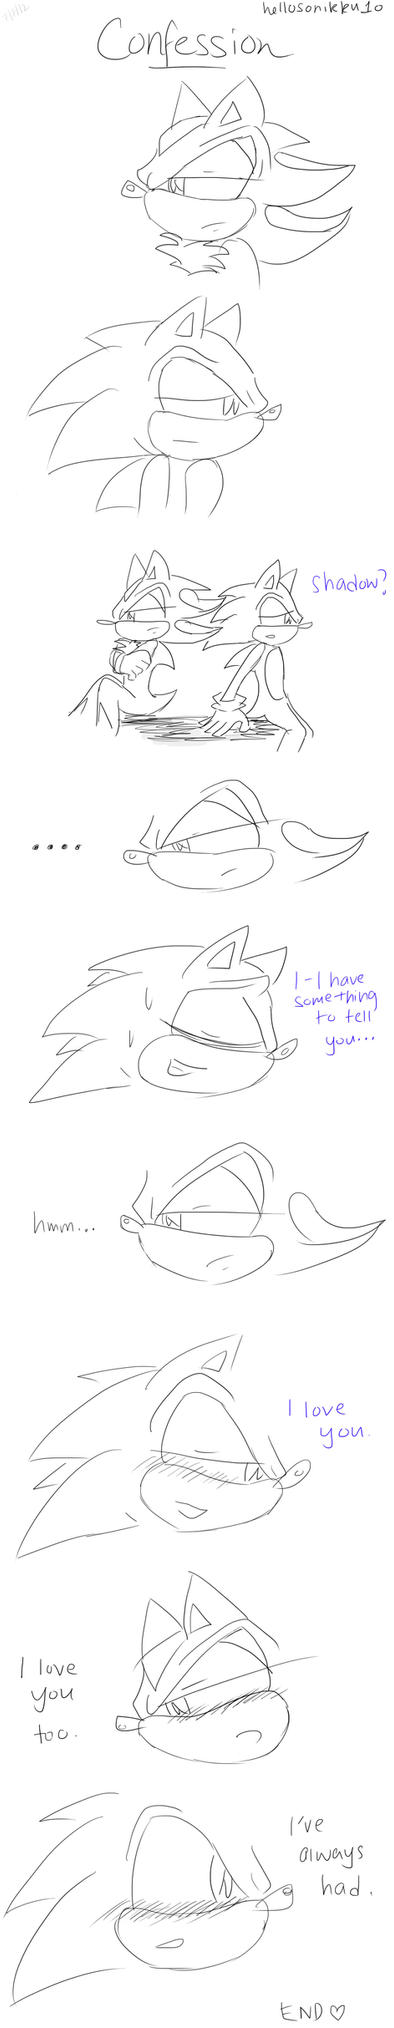 Sonadow mini comic- Confession by hellosonikku10